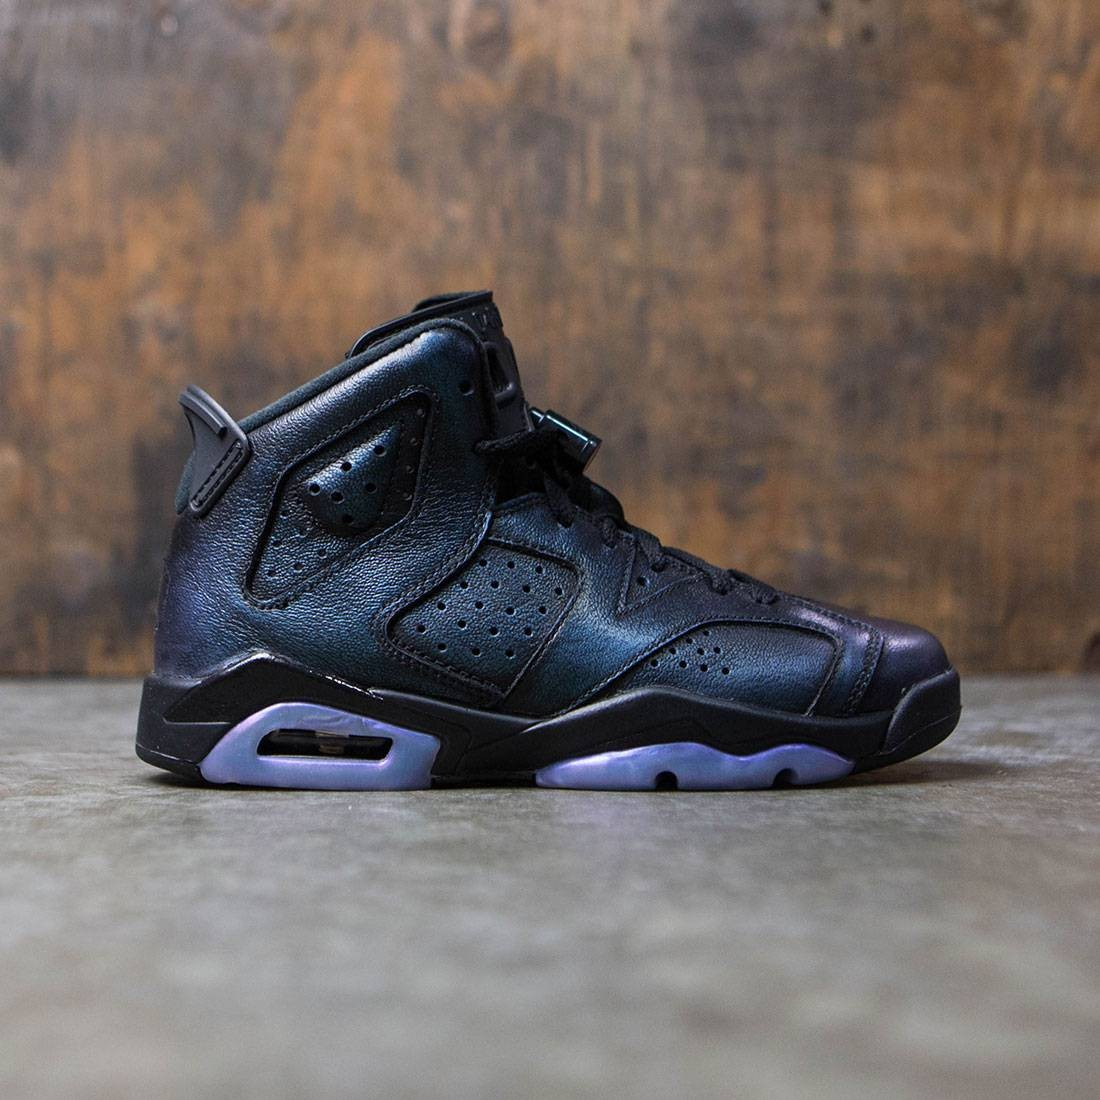 reputable site 91536 d2370 AIR JORDAN 6 RETRO AS BG Big Kids (black / black-white)